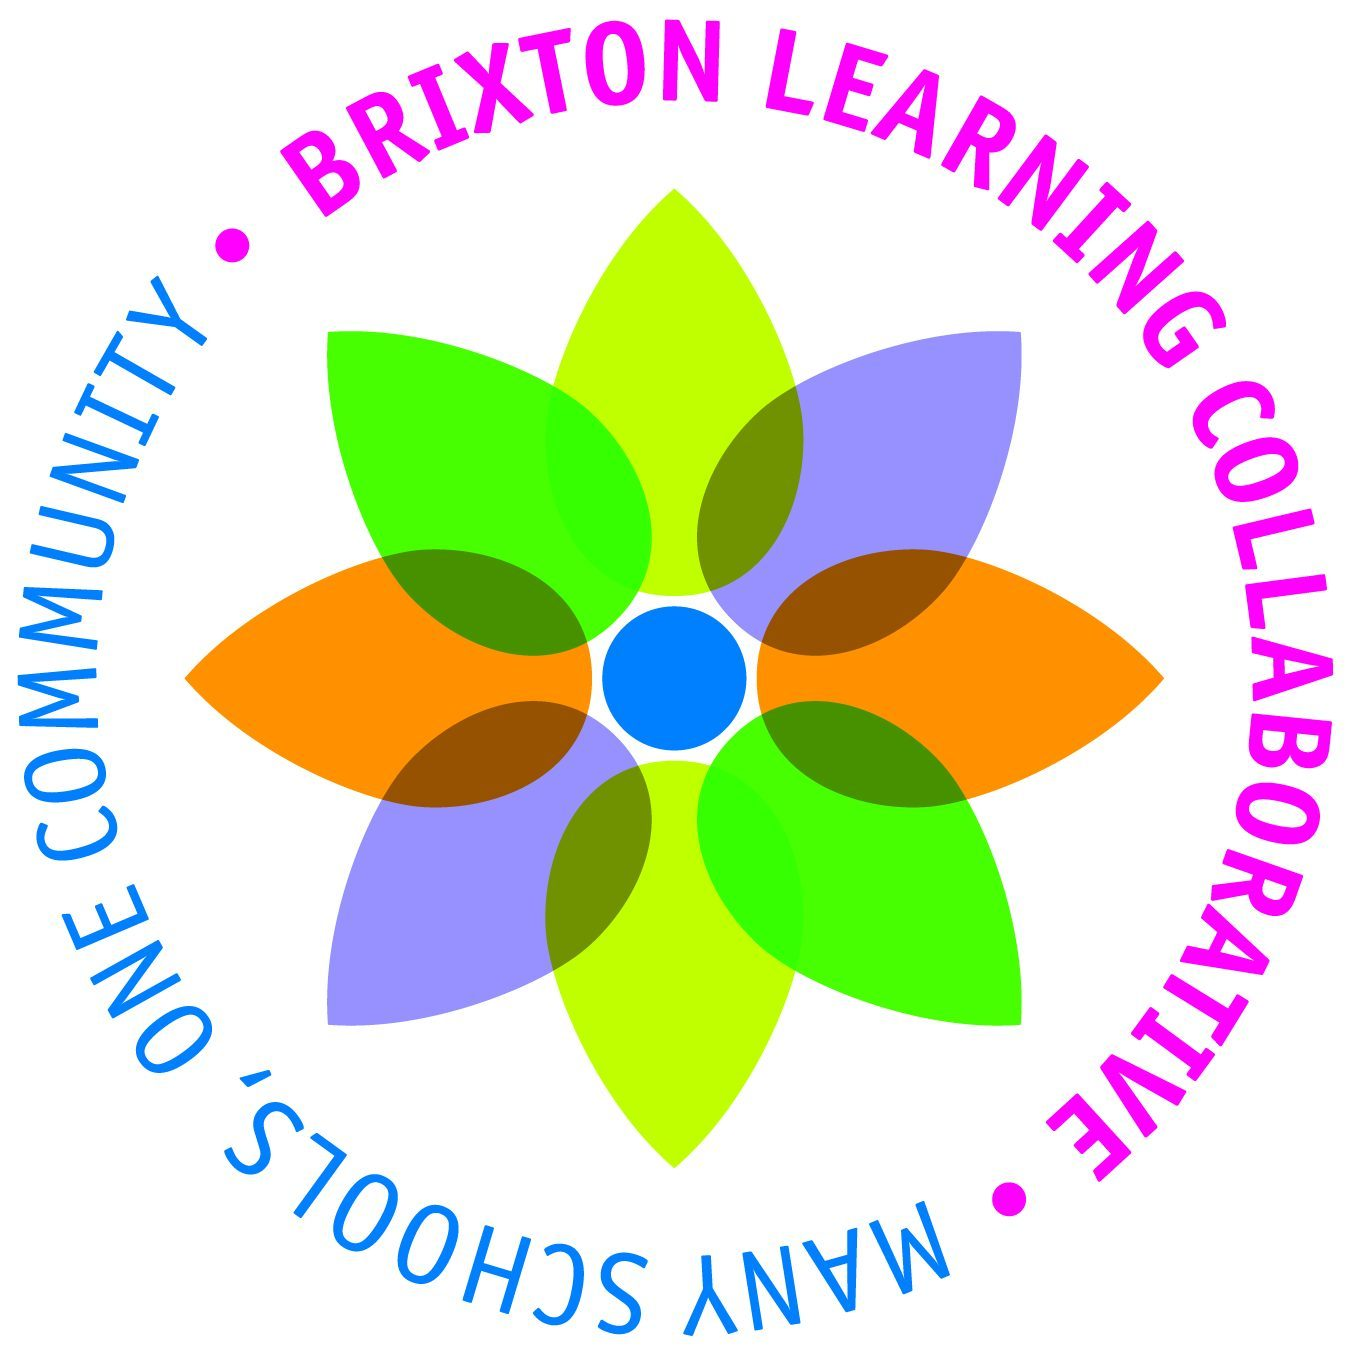 The Brixton Learning Collaborative